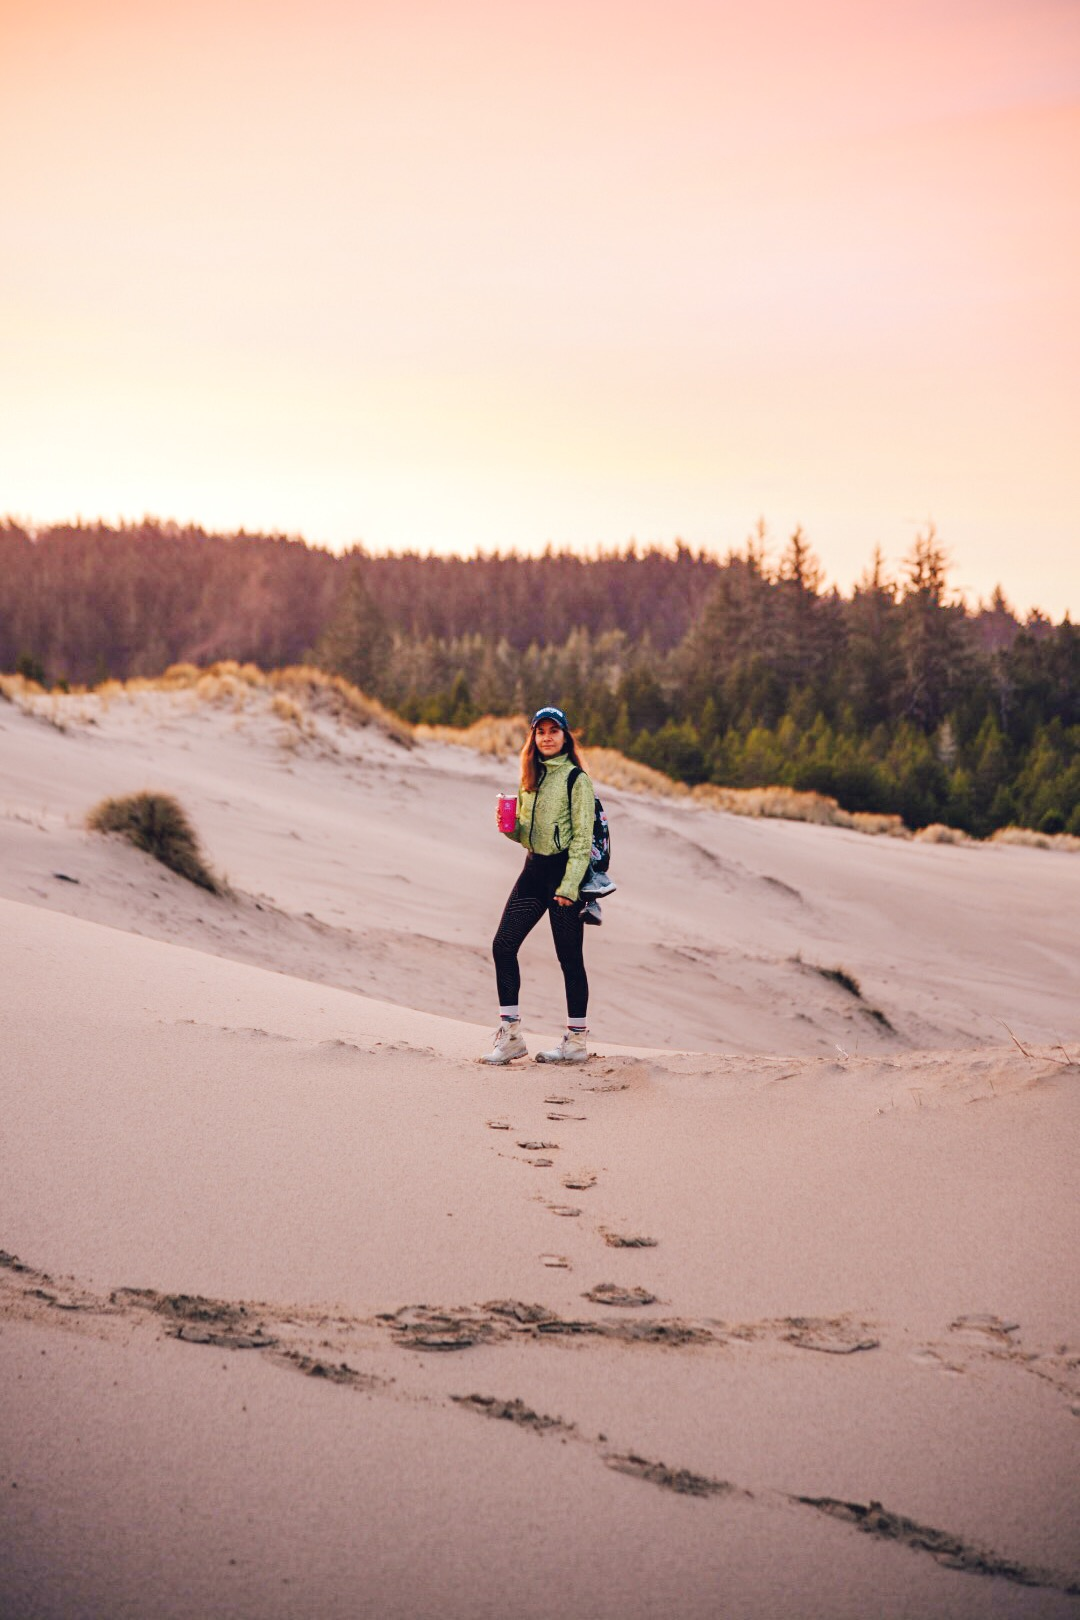 Dunes at 7:30 am at the Oregon day use area trail loop. Photo by  Matthew Davey